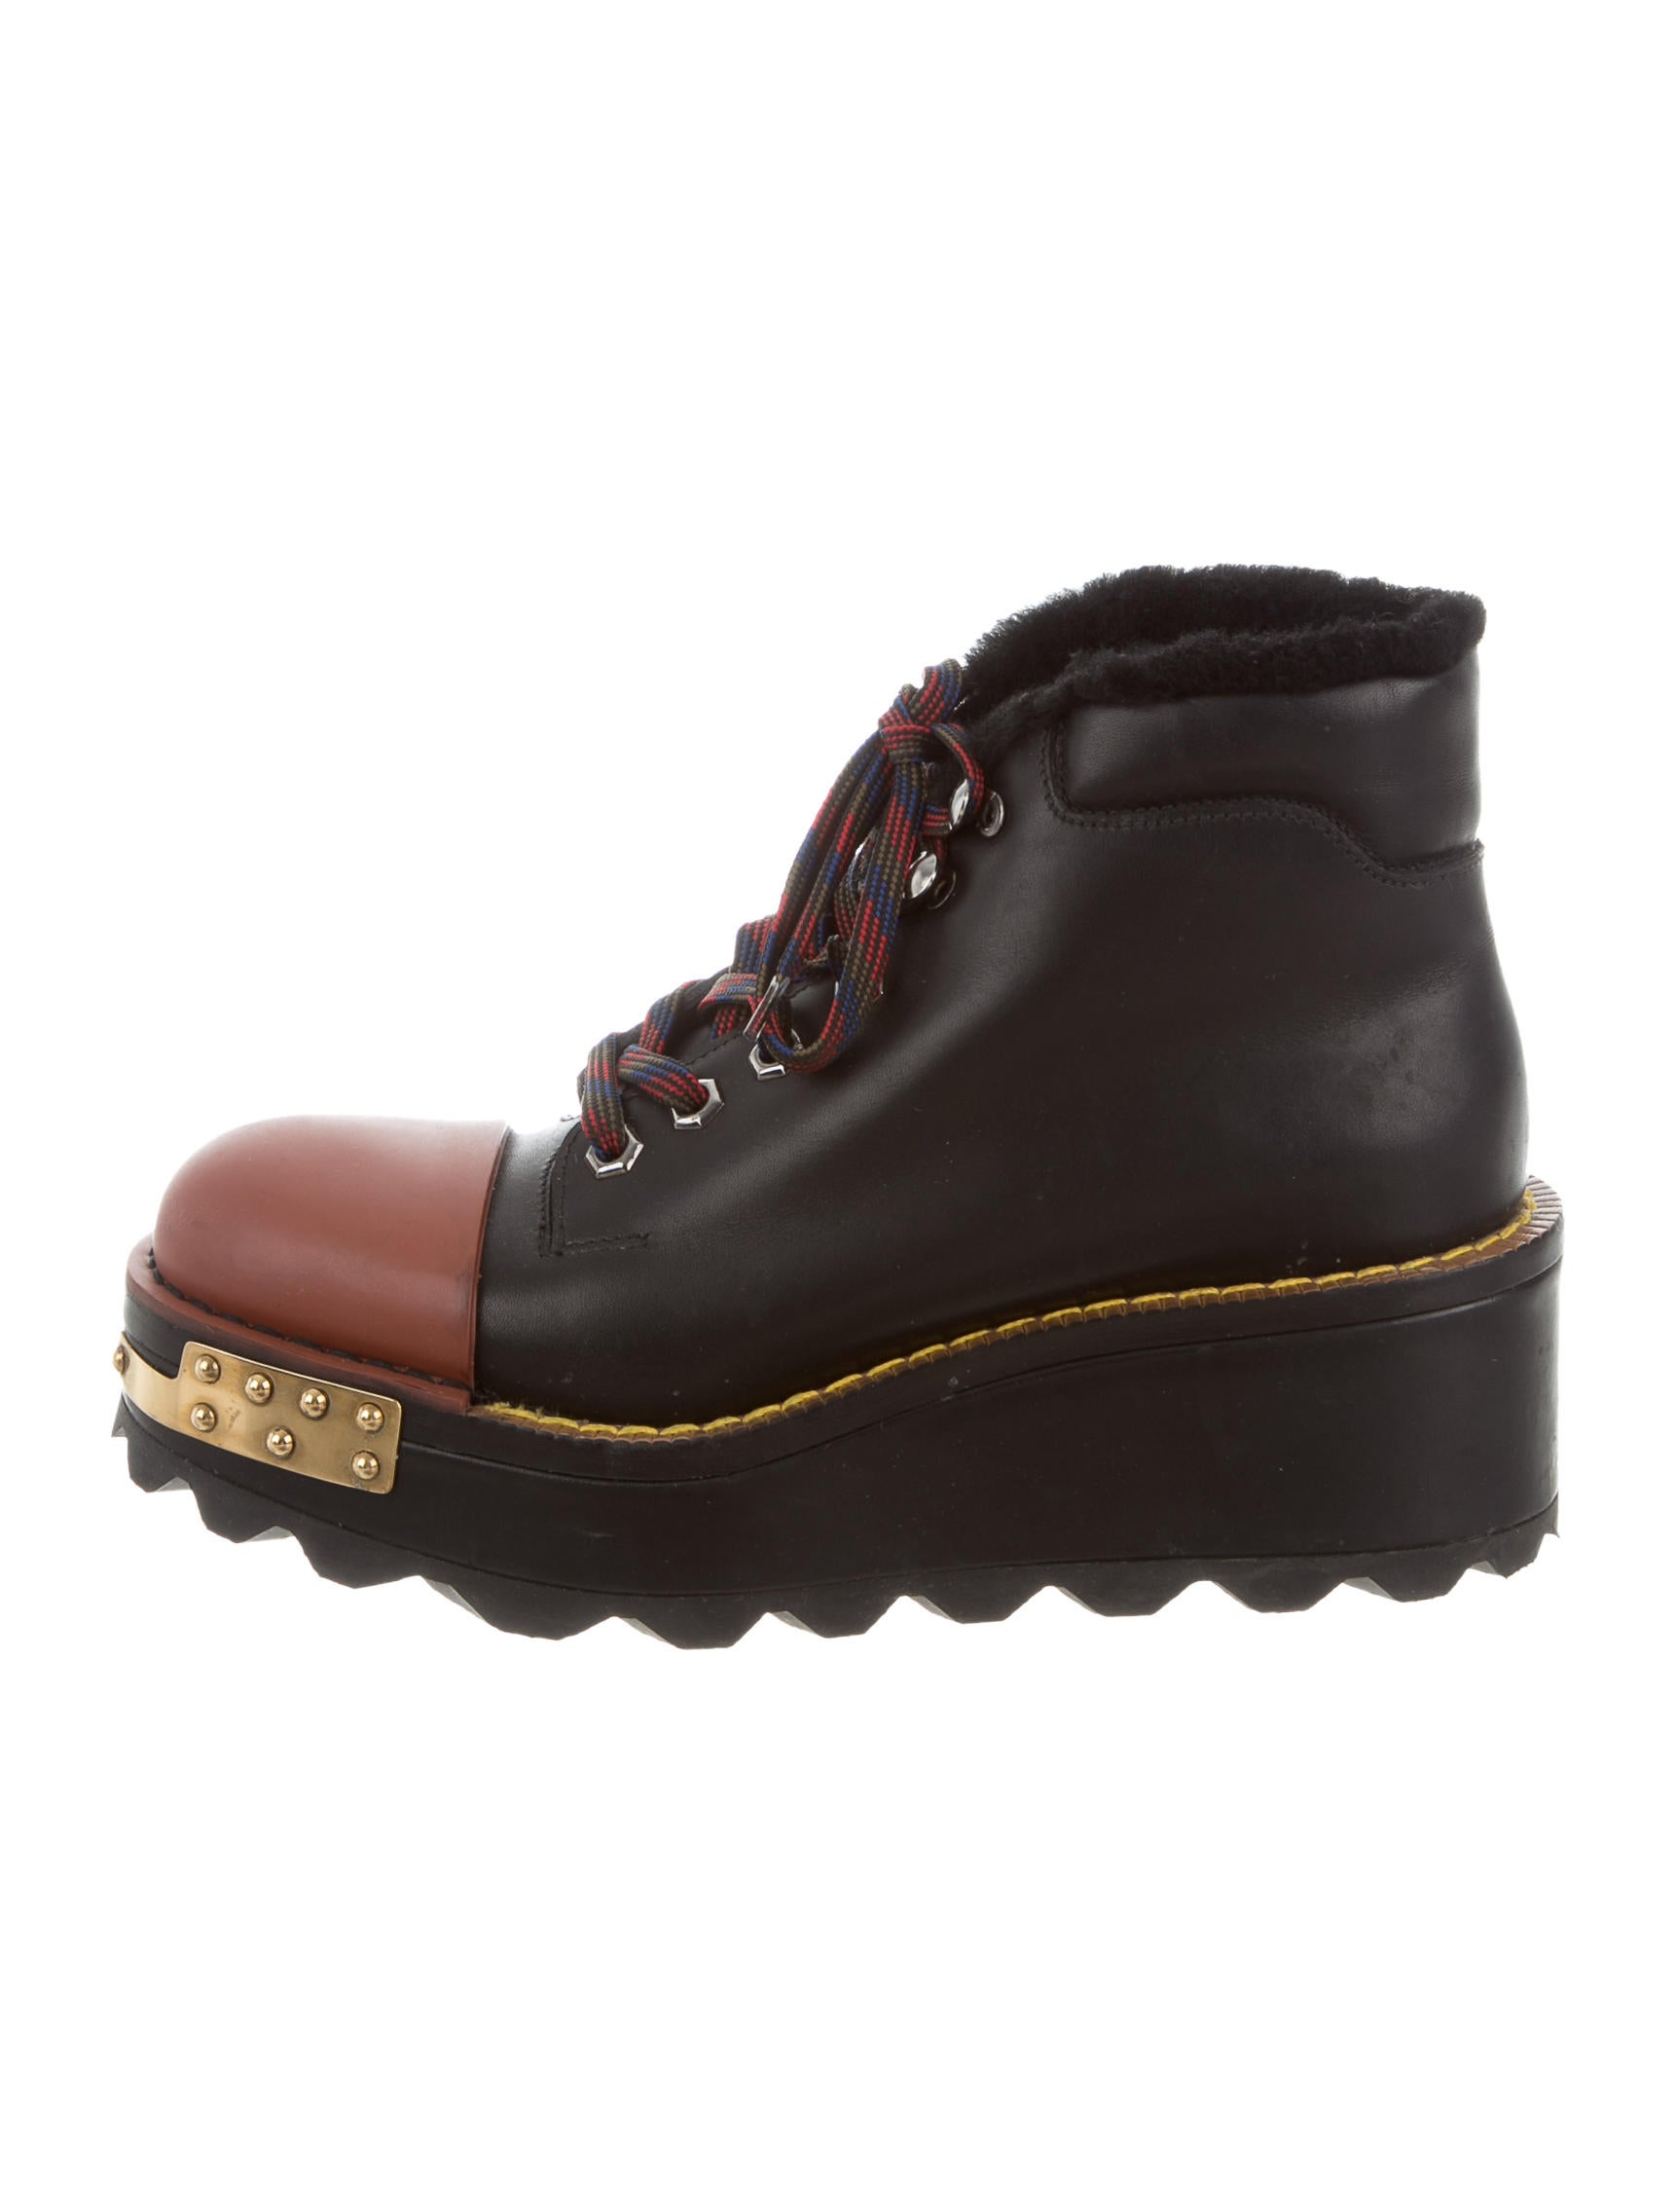 Collection Prada Women Shoes Rubber Cap Toes